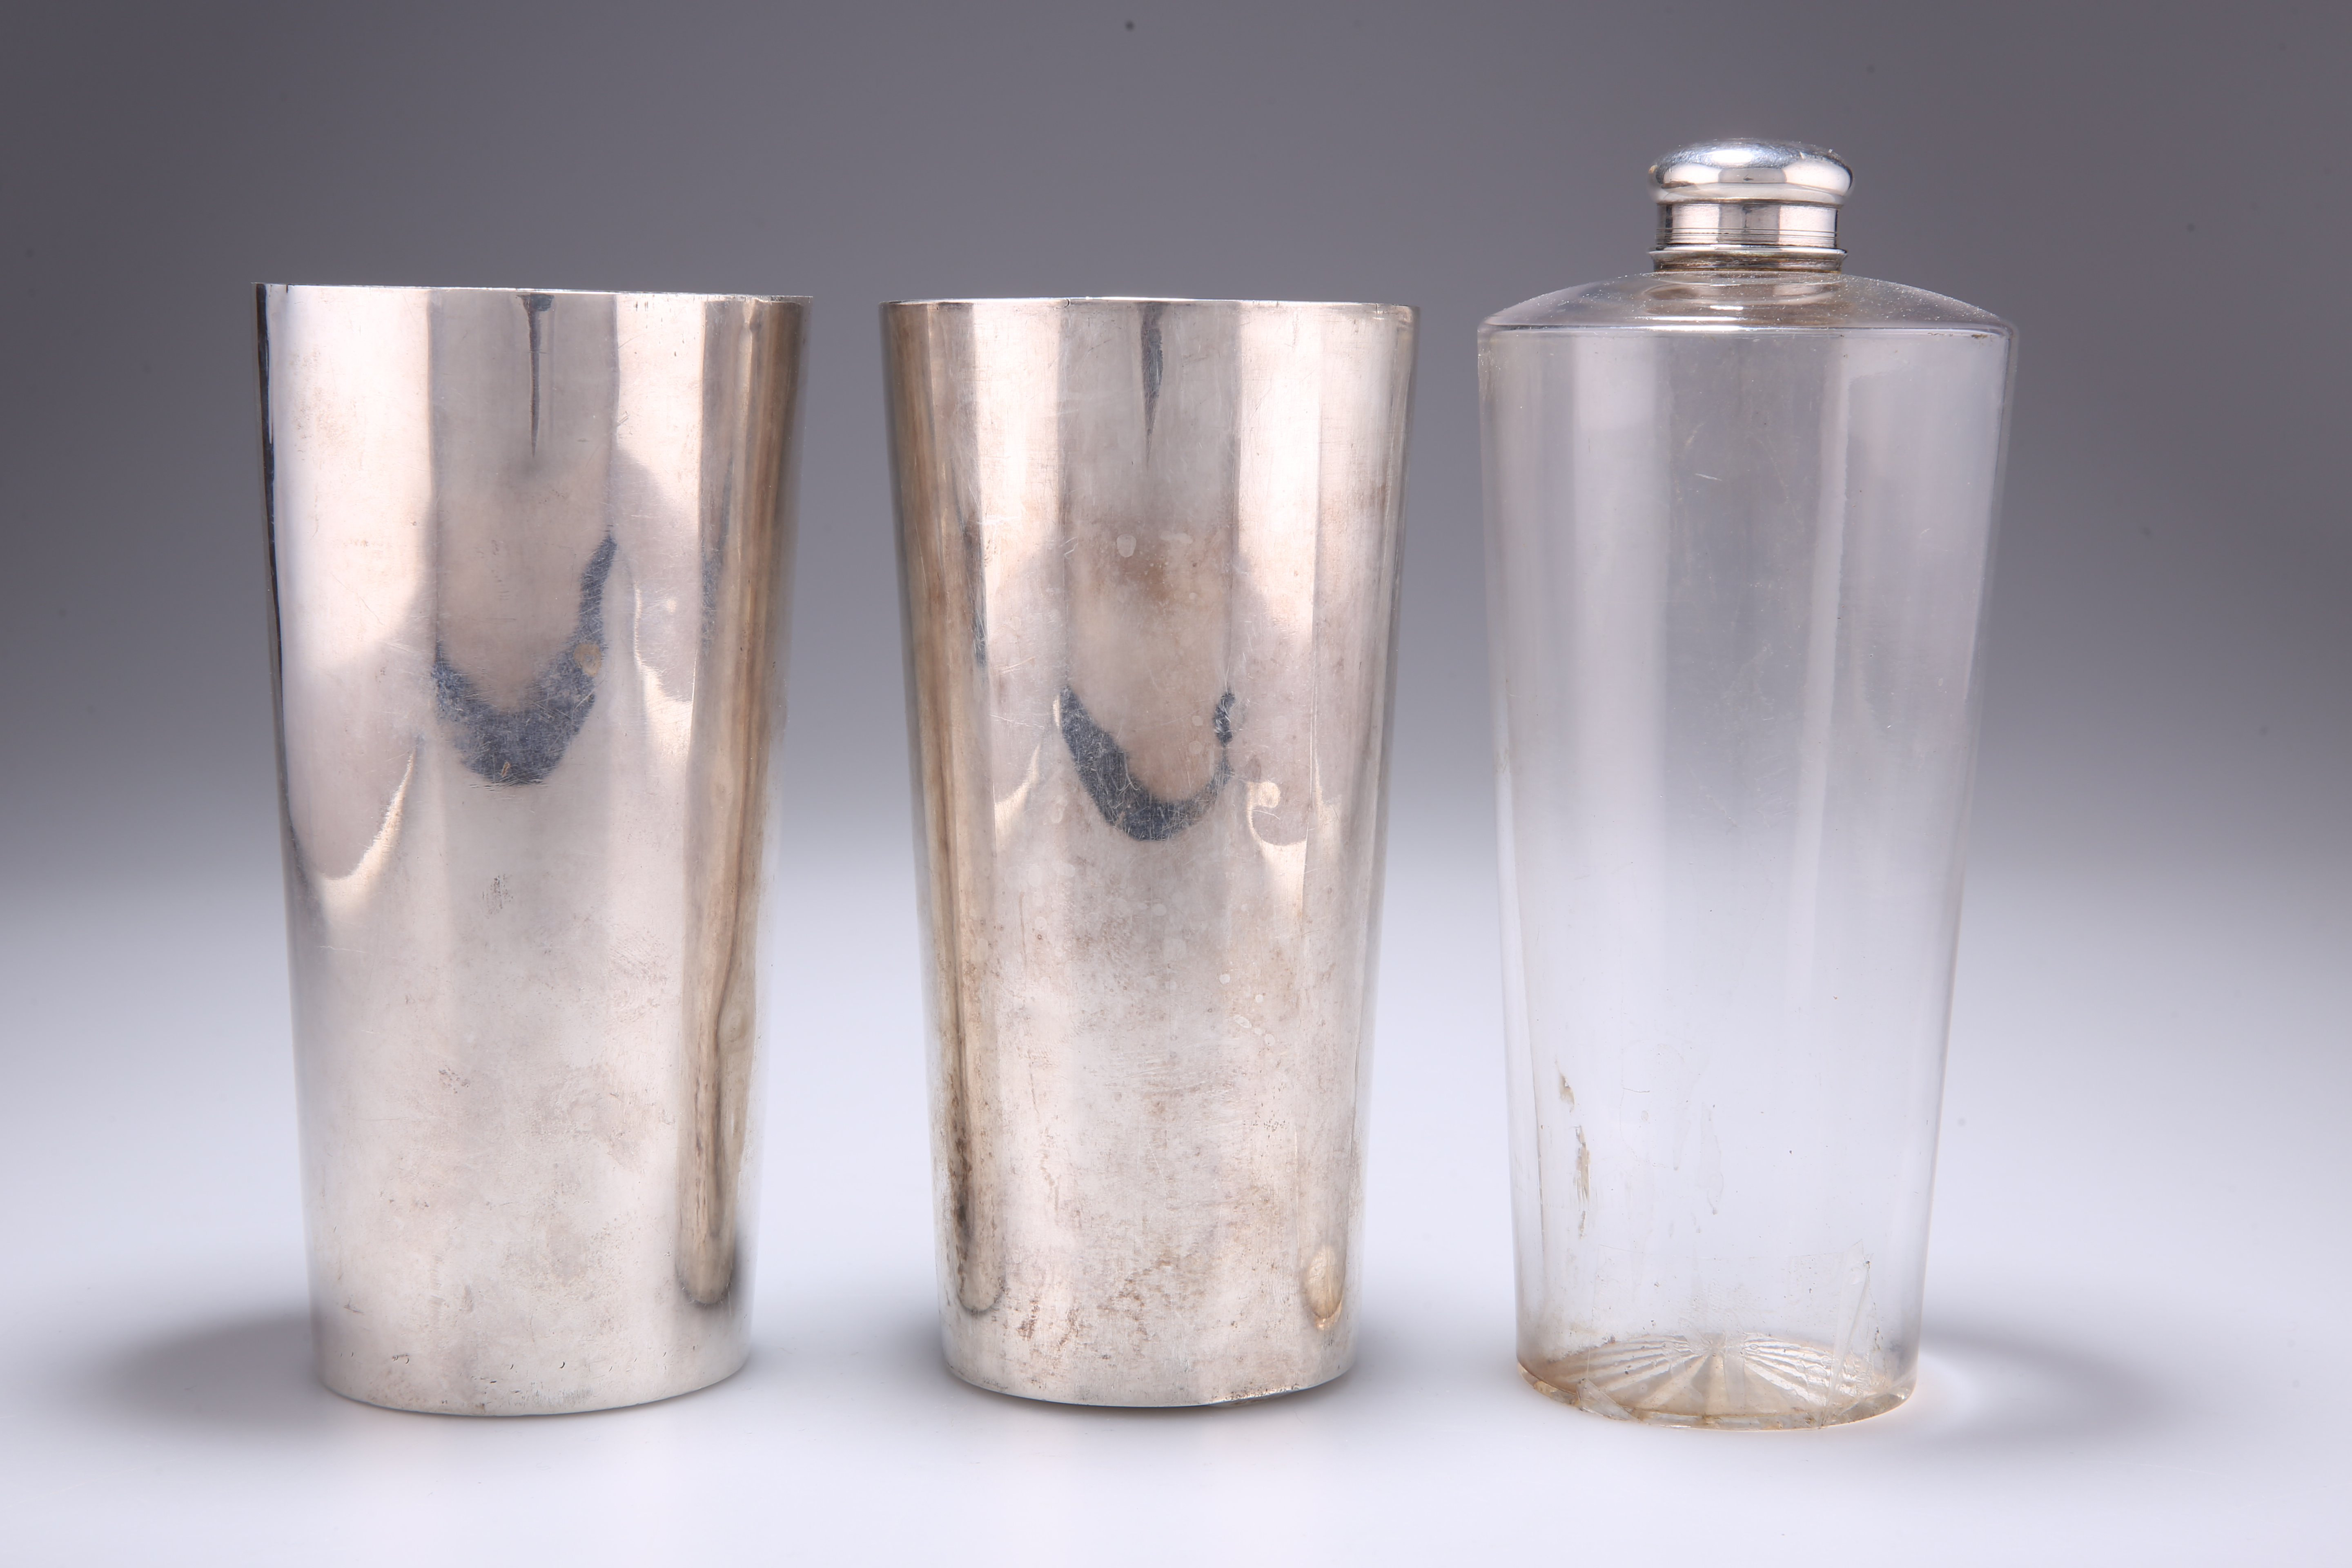 AN INDIAN COLONIAL GLASS SPIRIT FLASK AND TWO SILVER BEAKERS - Image 2 of 3